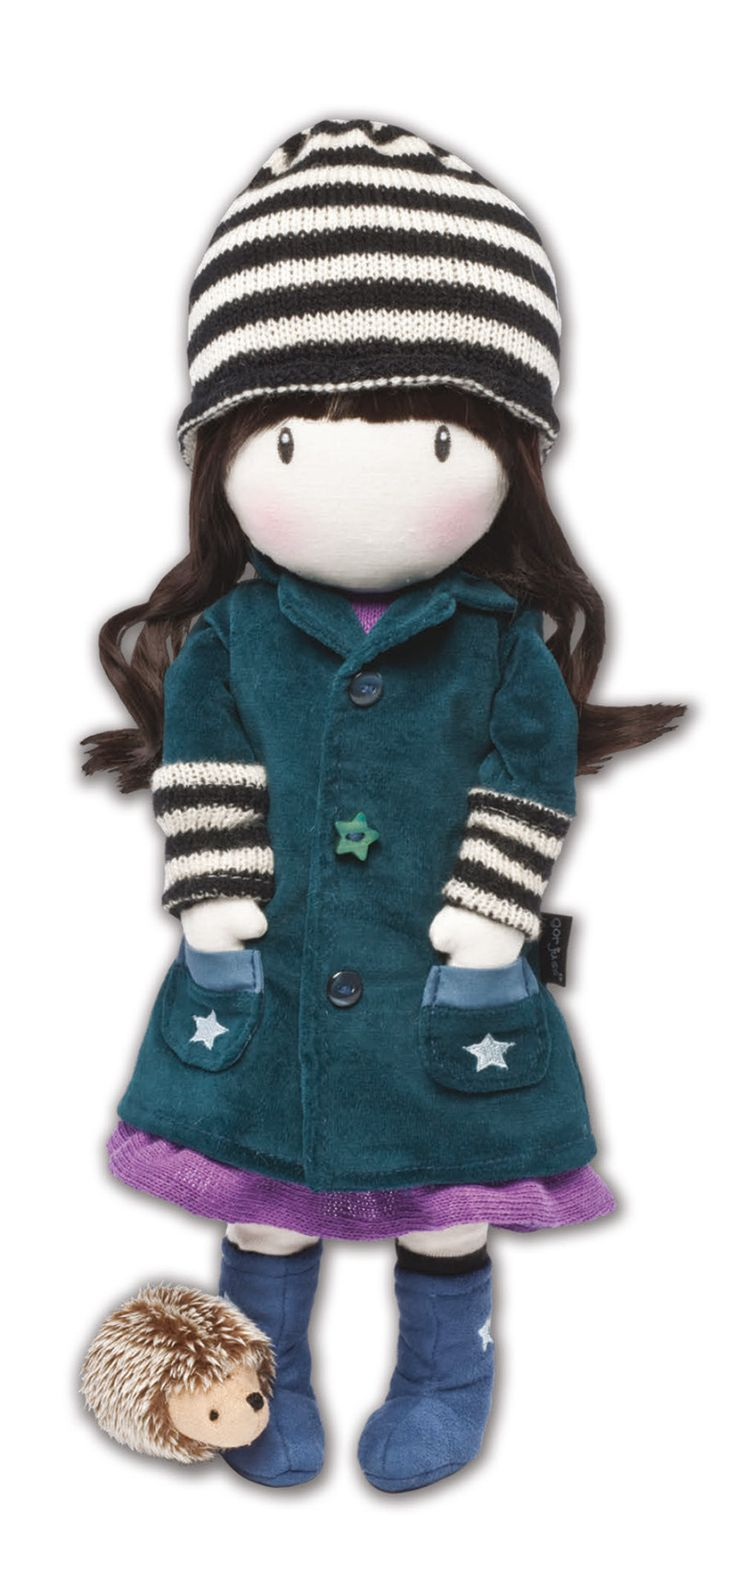 http://www.babycity.co.uk/sysimages/origimages/aurora-santoro-gorjuss-toadstools-doll-standing_sp10498_1.jpg